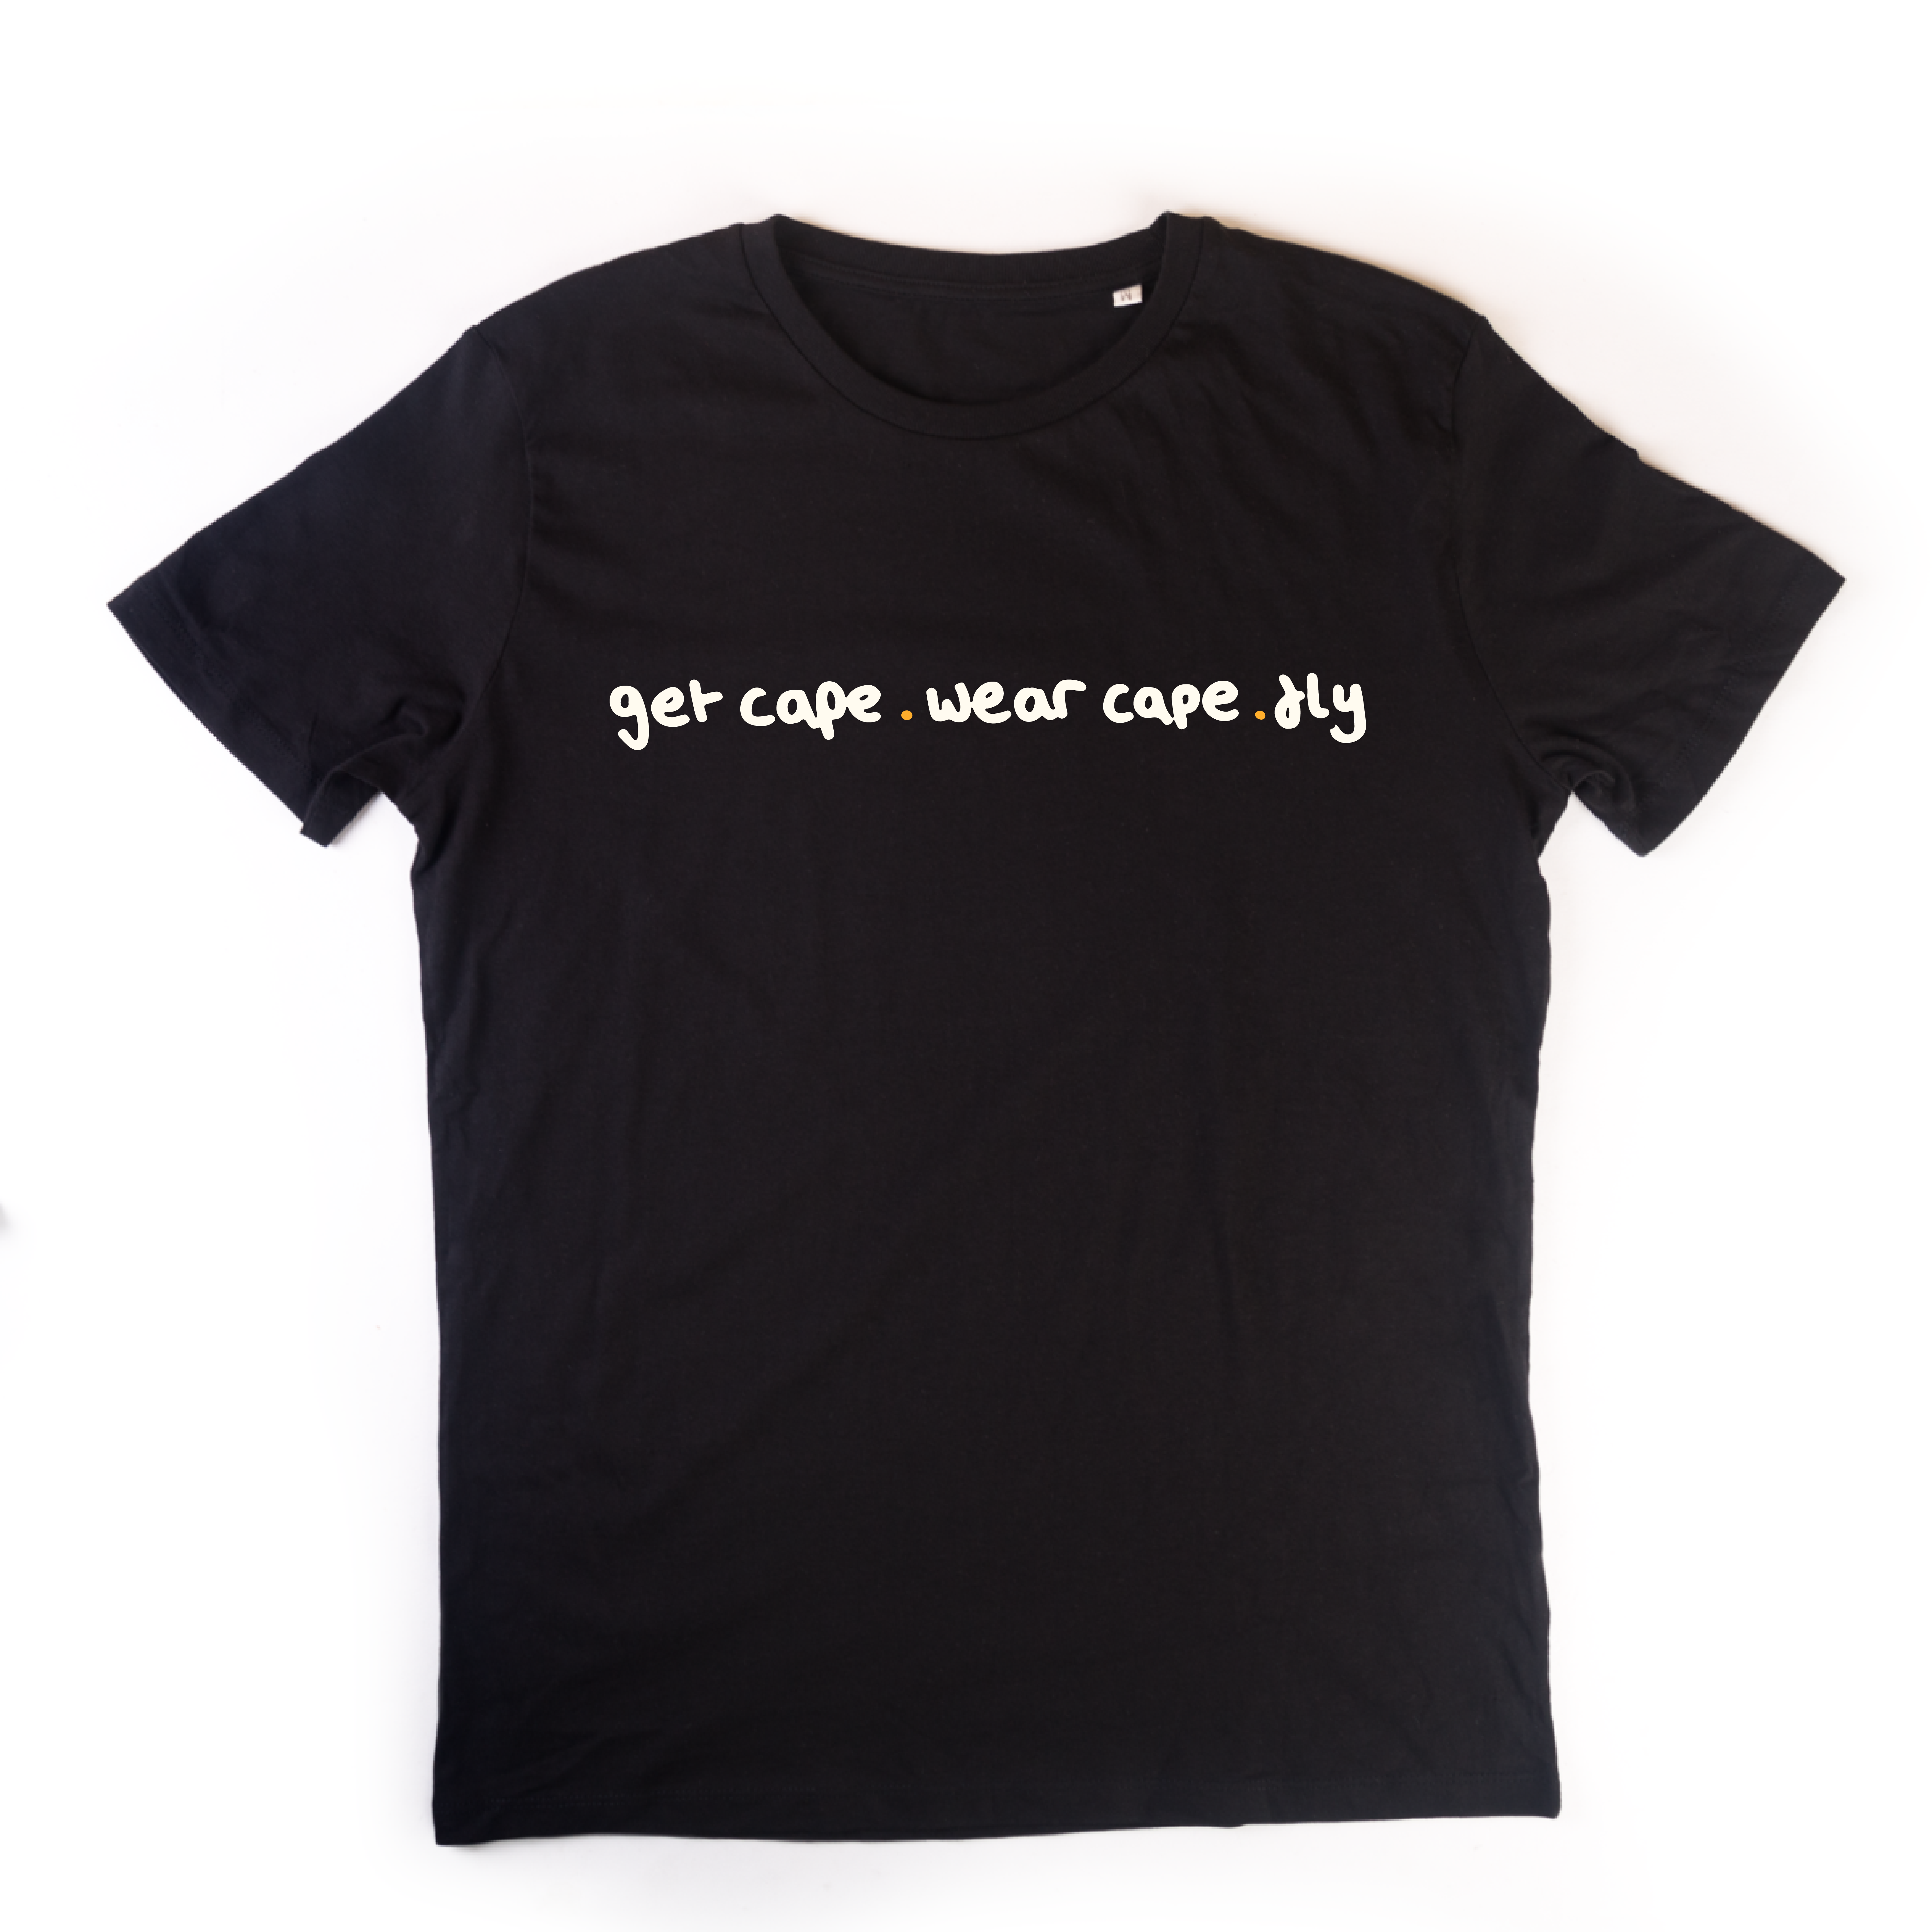 Classic Logo T - Get Cape. Wear Cape. Fly